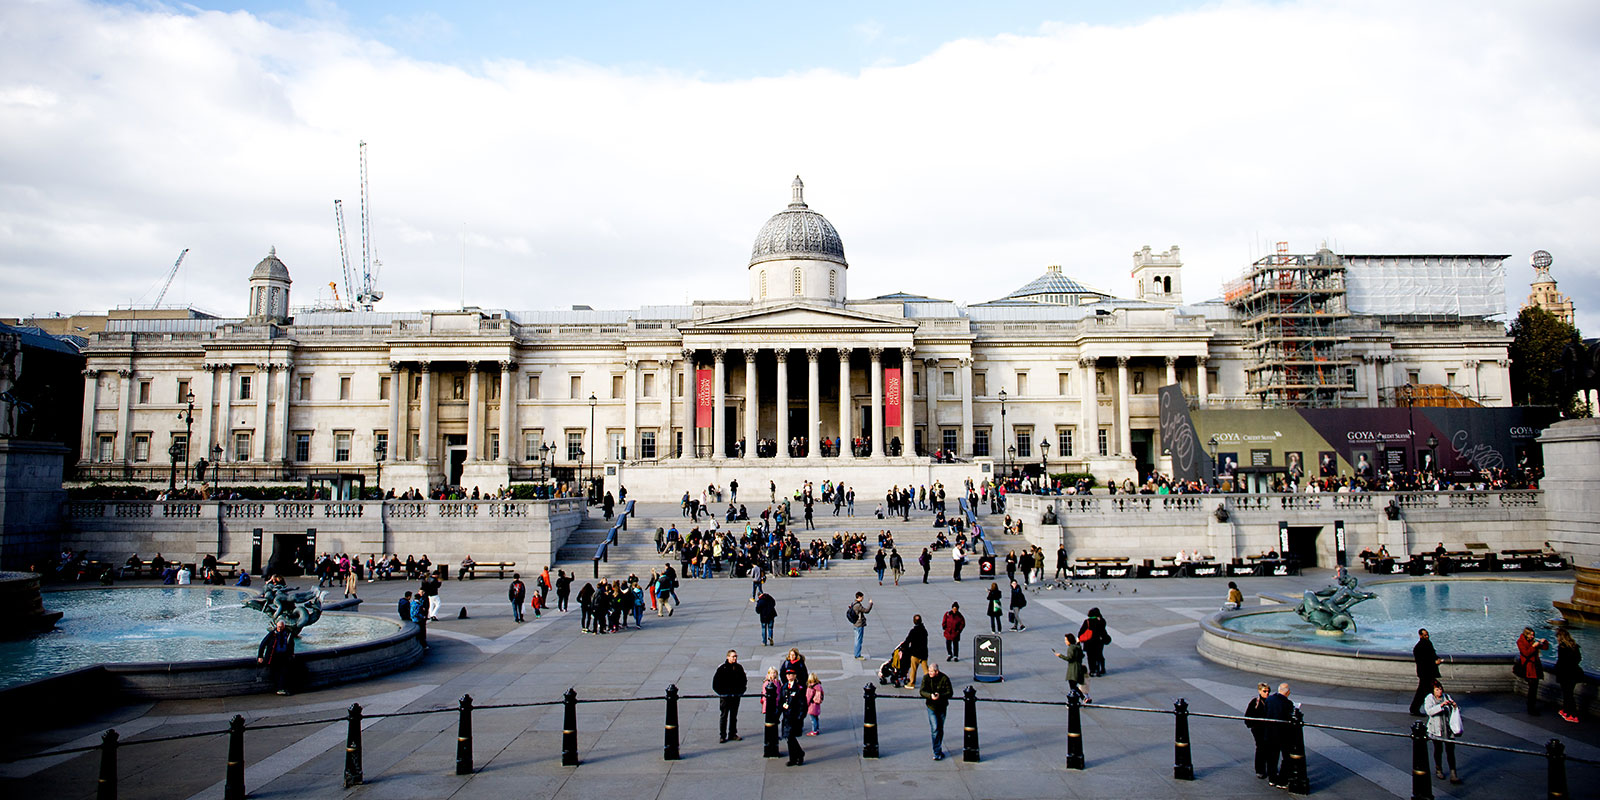 Visit Trafalgar Square | London City Hall